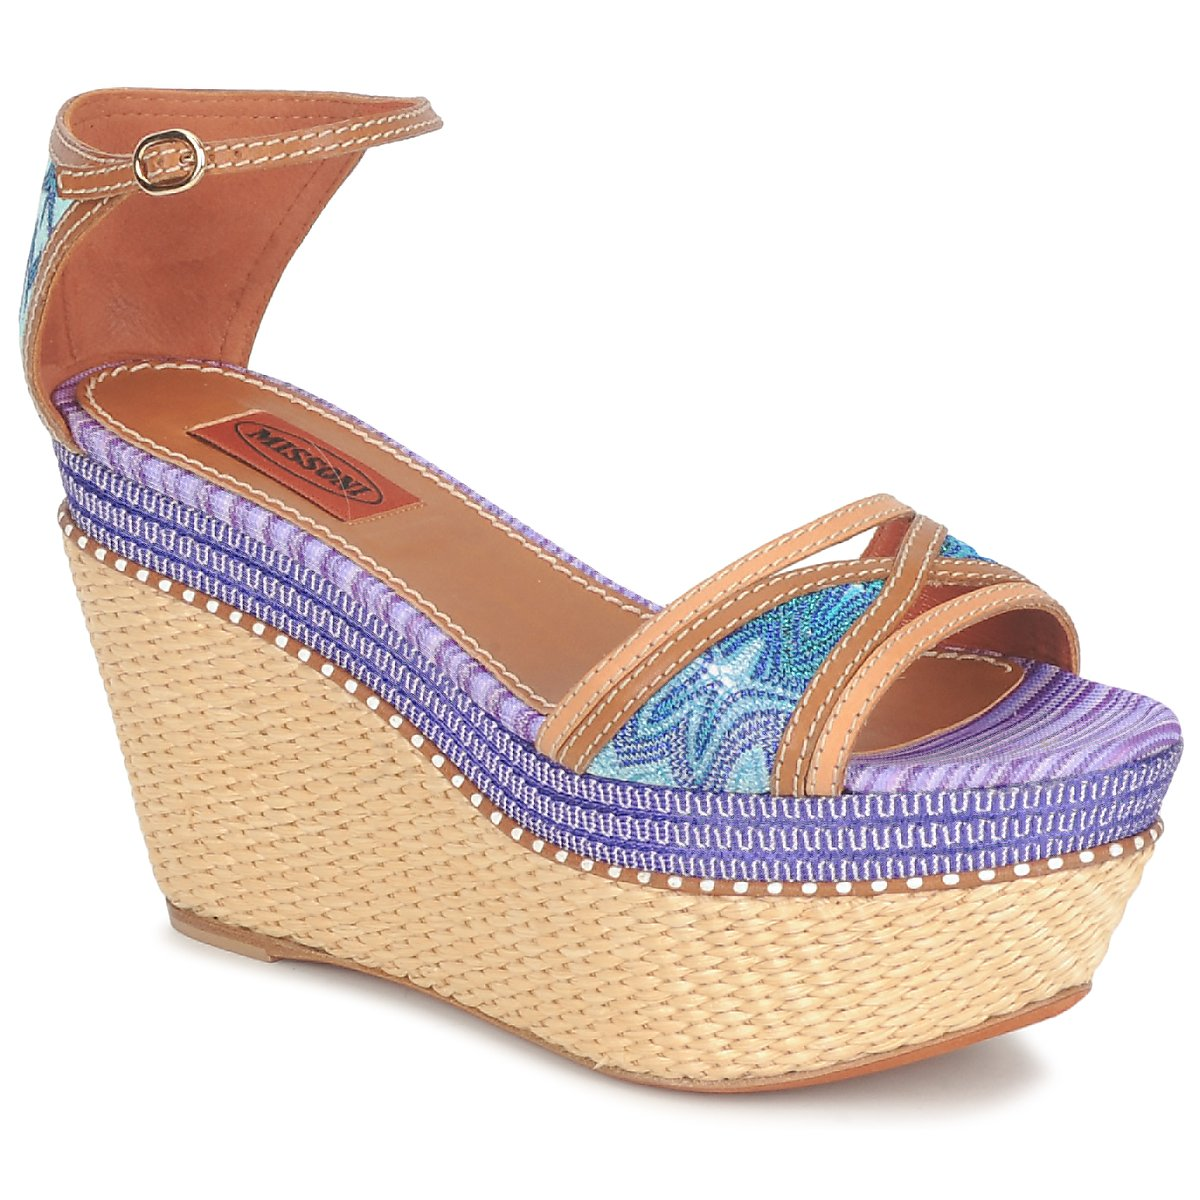 Sandales Missoni TM26 Bleu / Marron